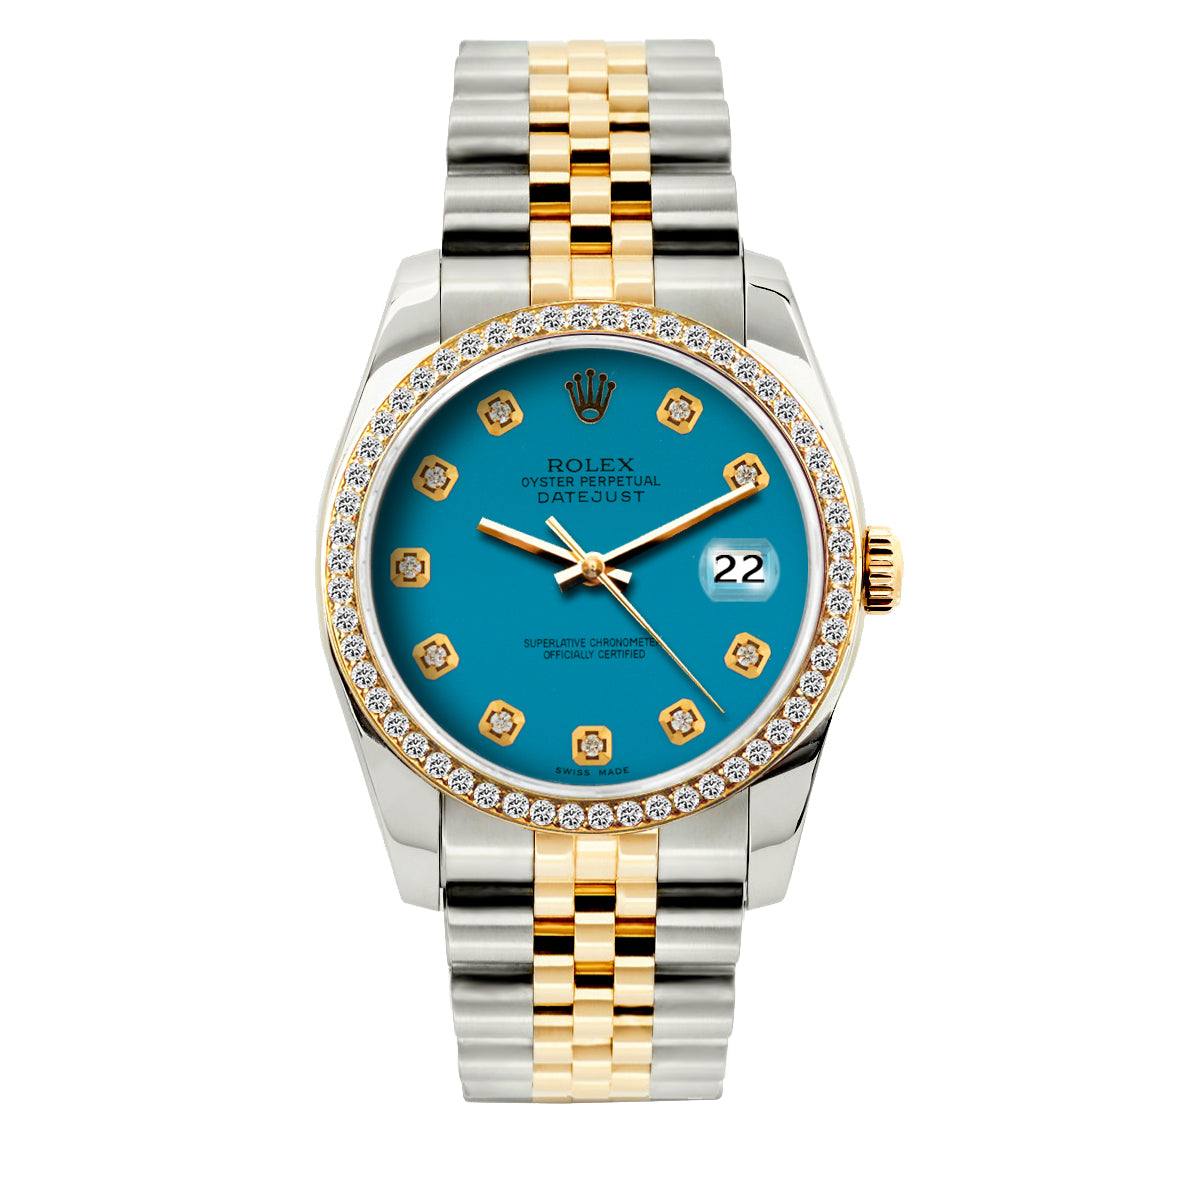 Rolex Datejust 36mm Yellow Gold and Stainless Steel Bracelet Blue Dial w/ Diamond Bezel